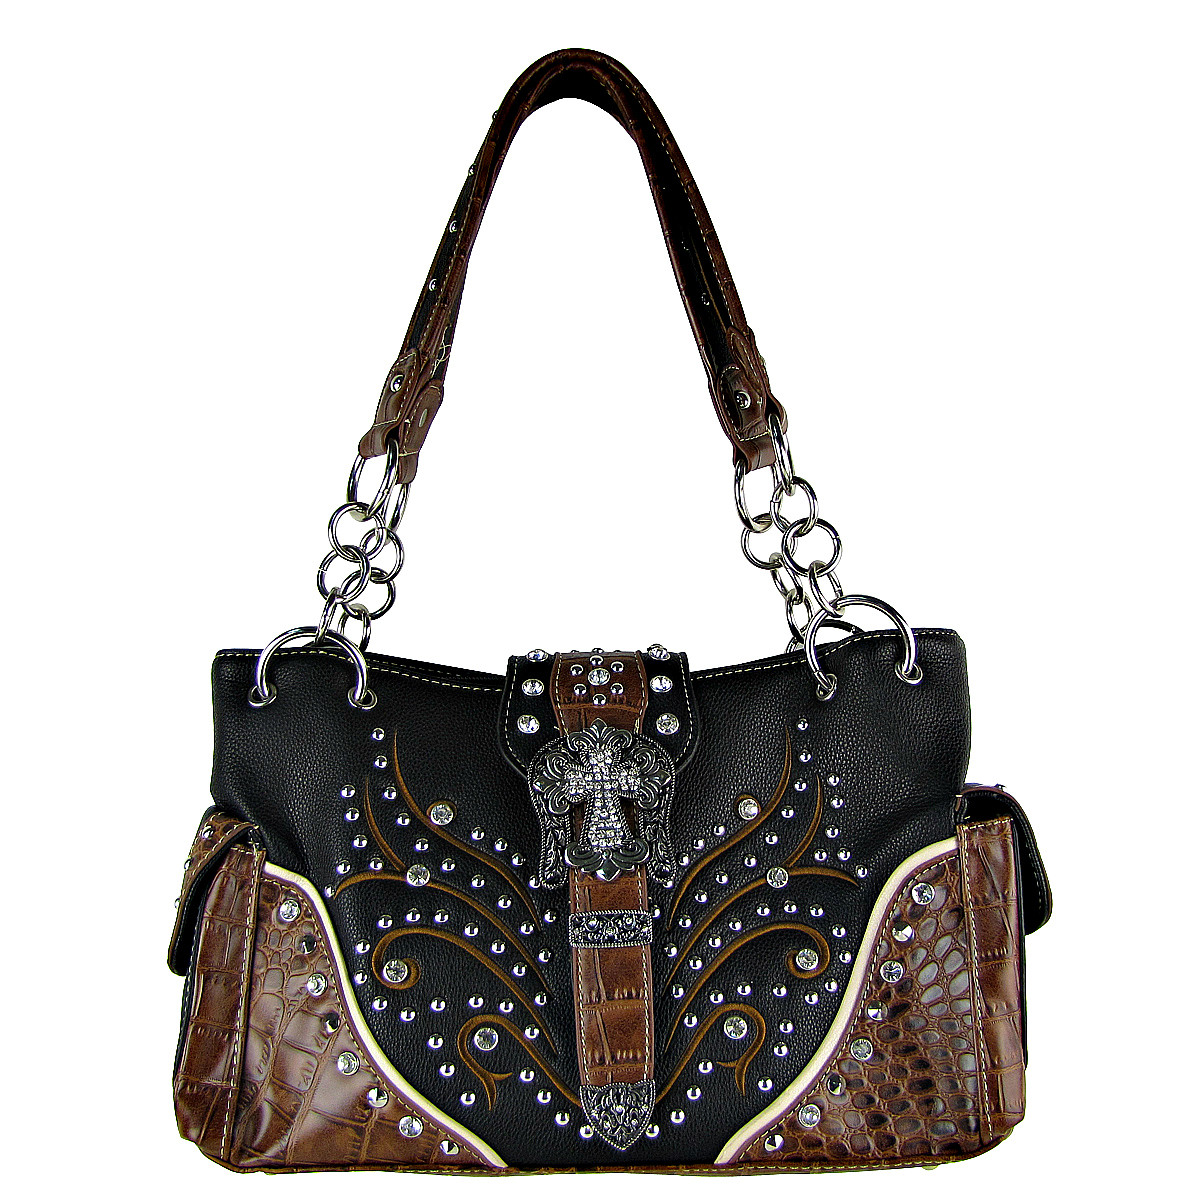 BLACK STUDDED RHINESTONE CROSS BUCKLE LOOK SHOULDER HANDBAG HB1-HL12174-1BLK